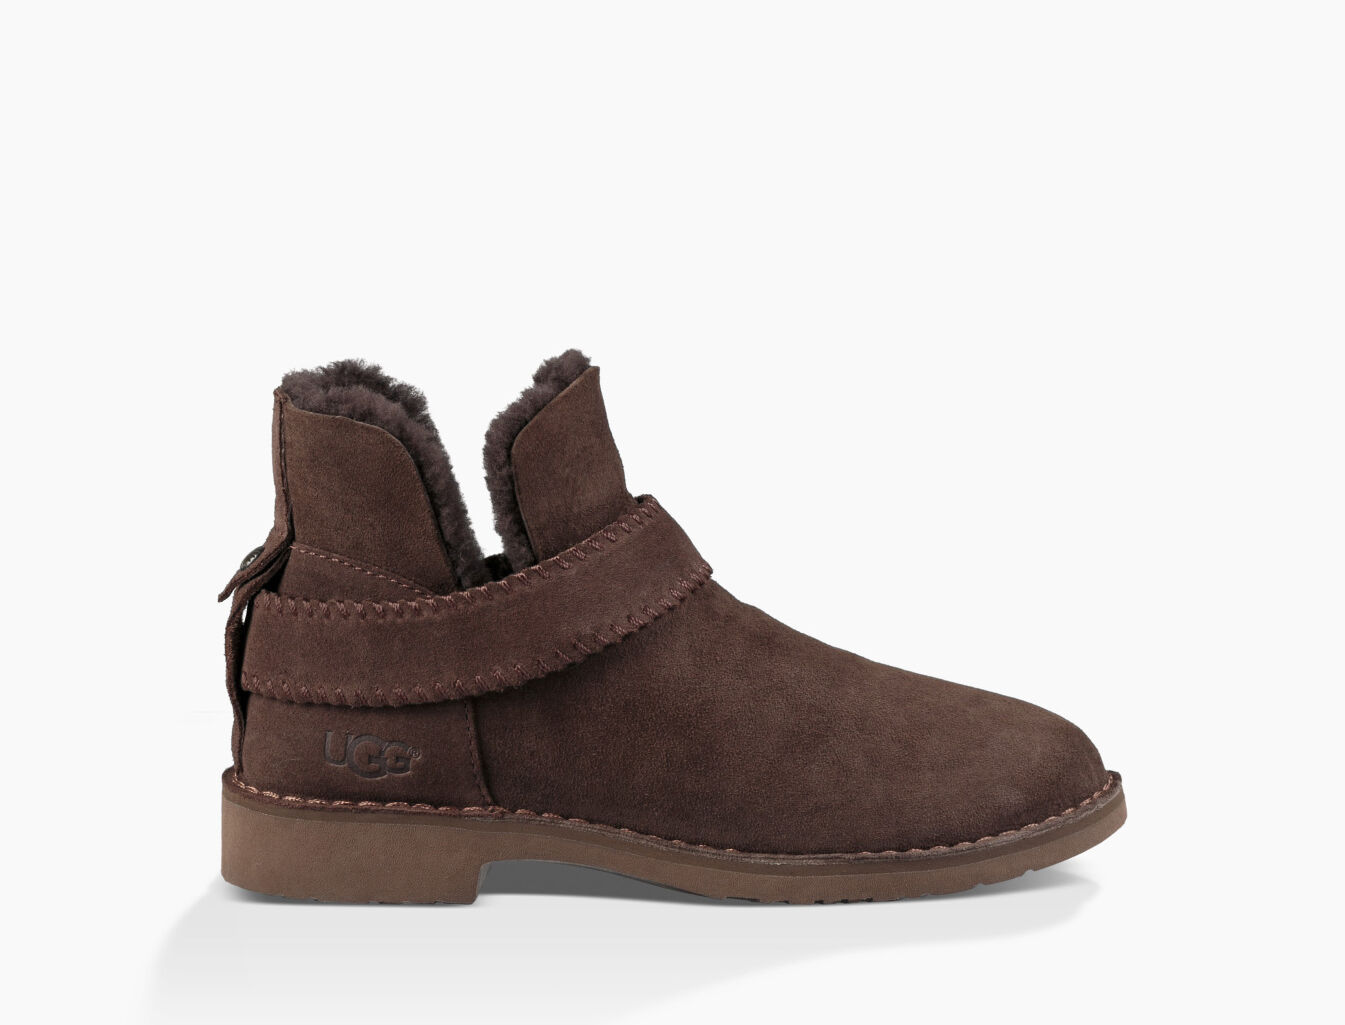 The Best Ugg Mckay Ankle Boots Womens Chocolate Online Store